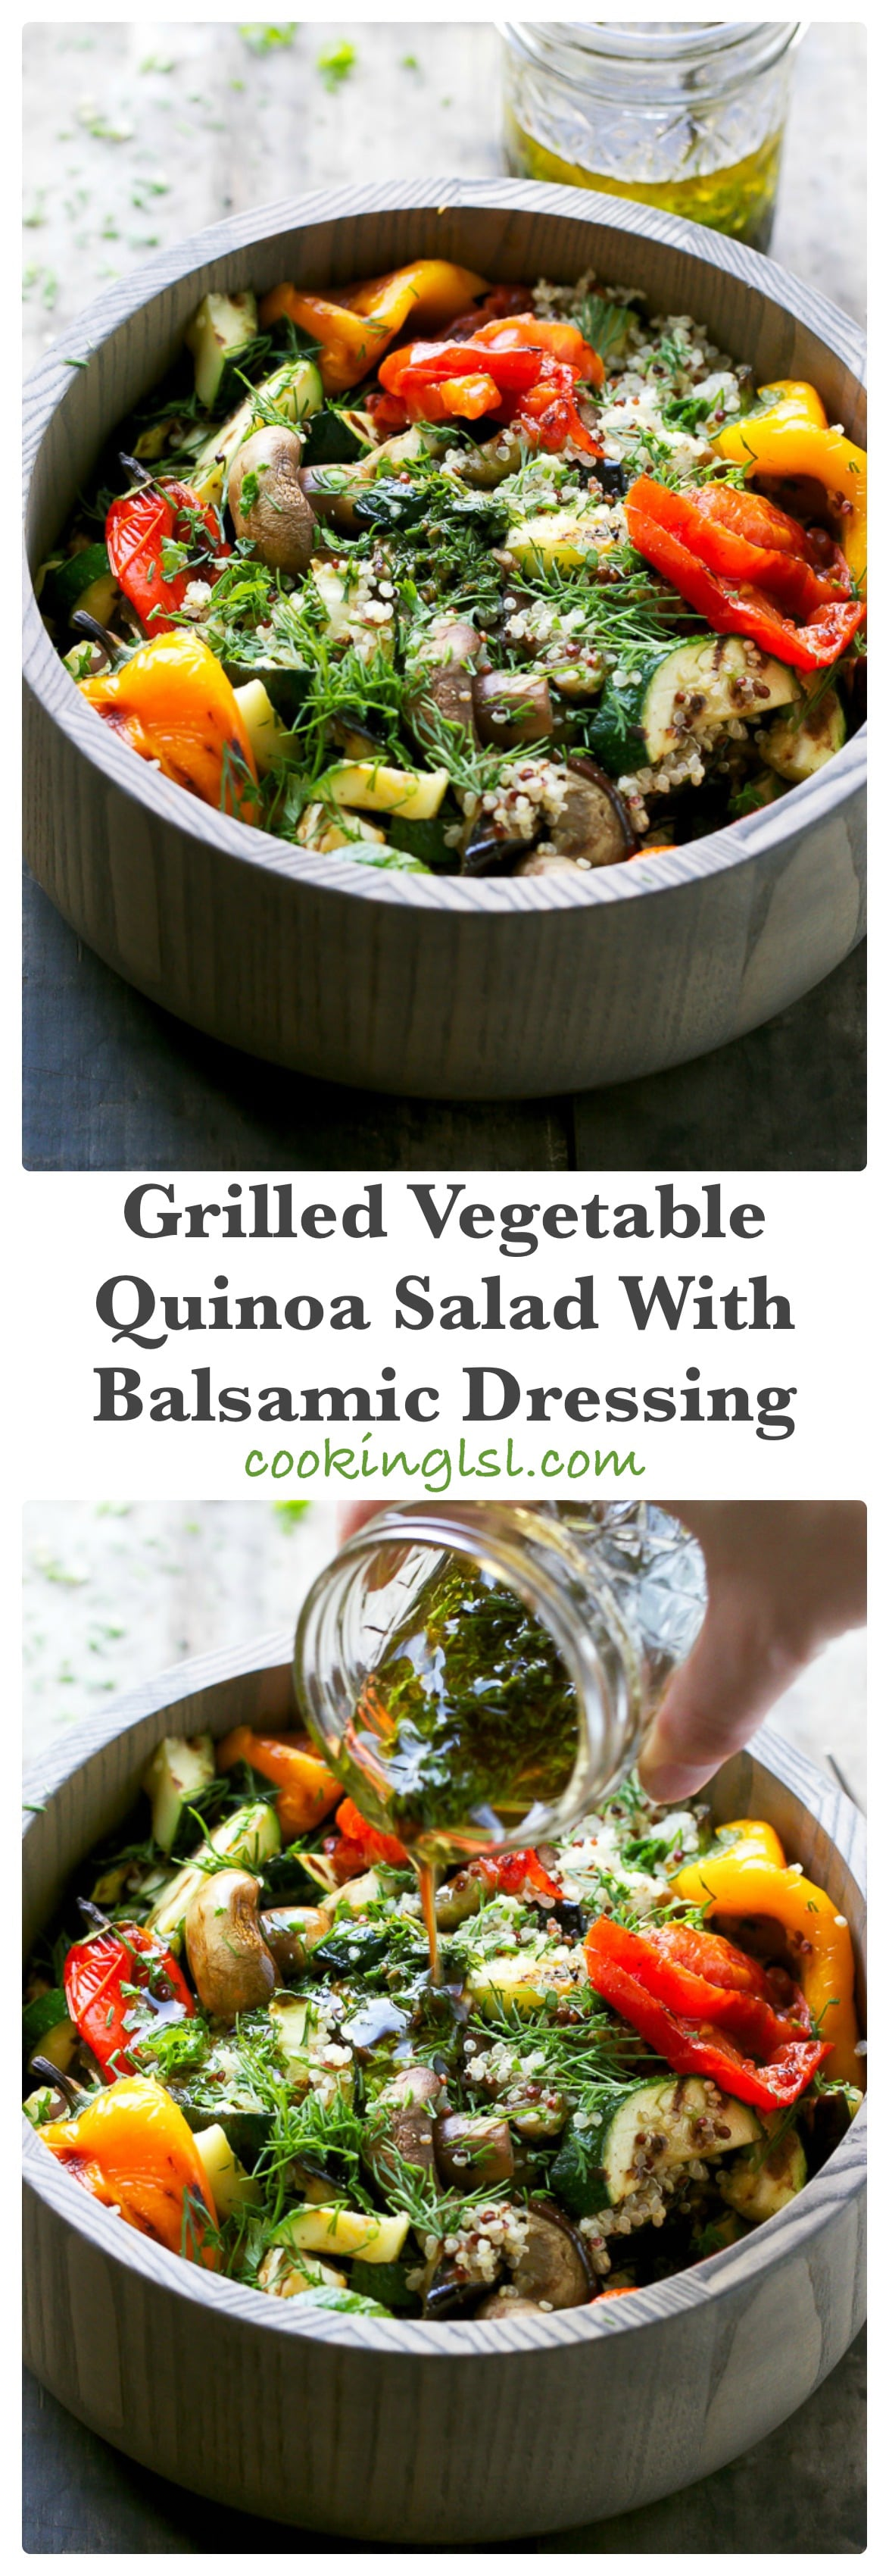 Grilled Vegetable Quinoa Salad With Balsamic Dressing -